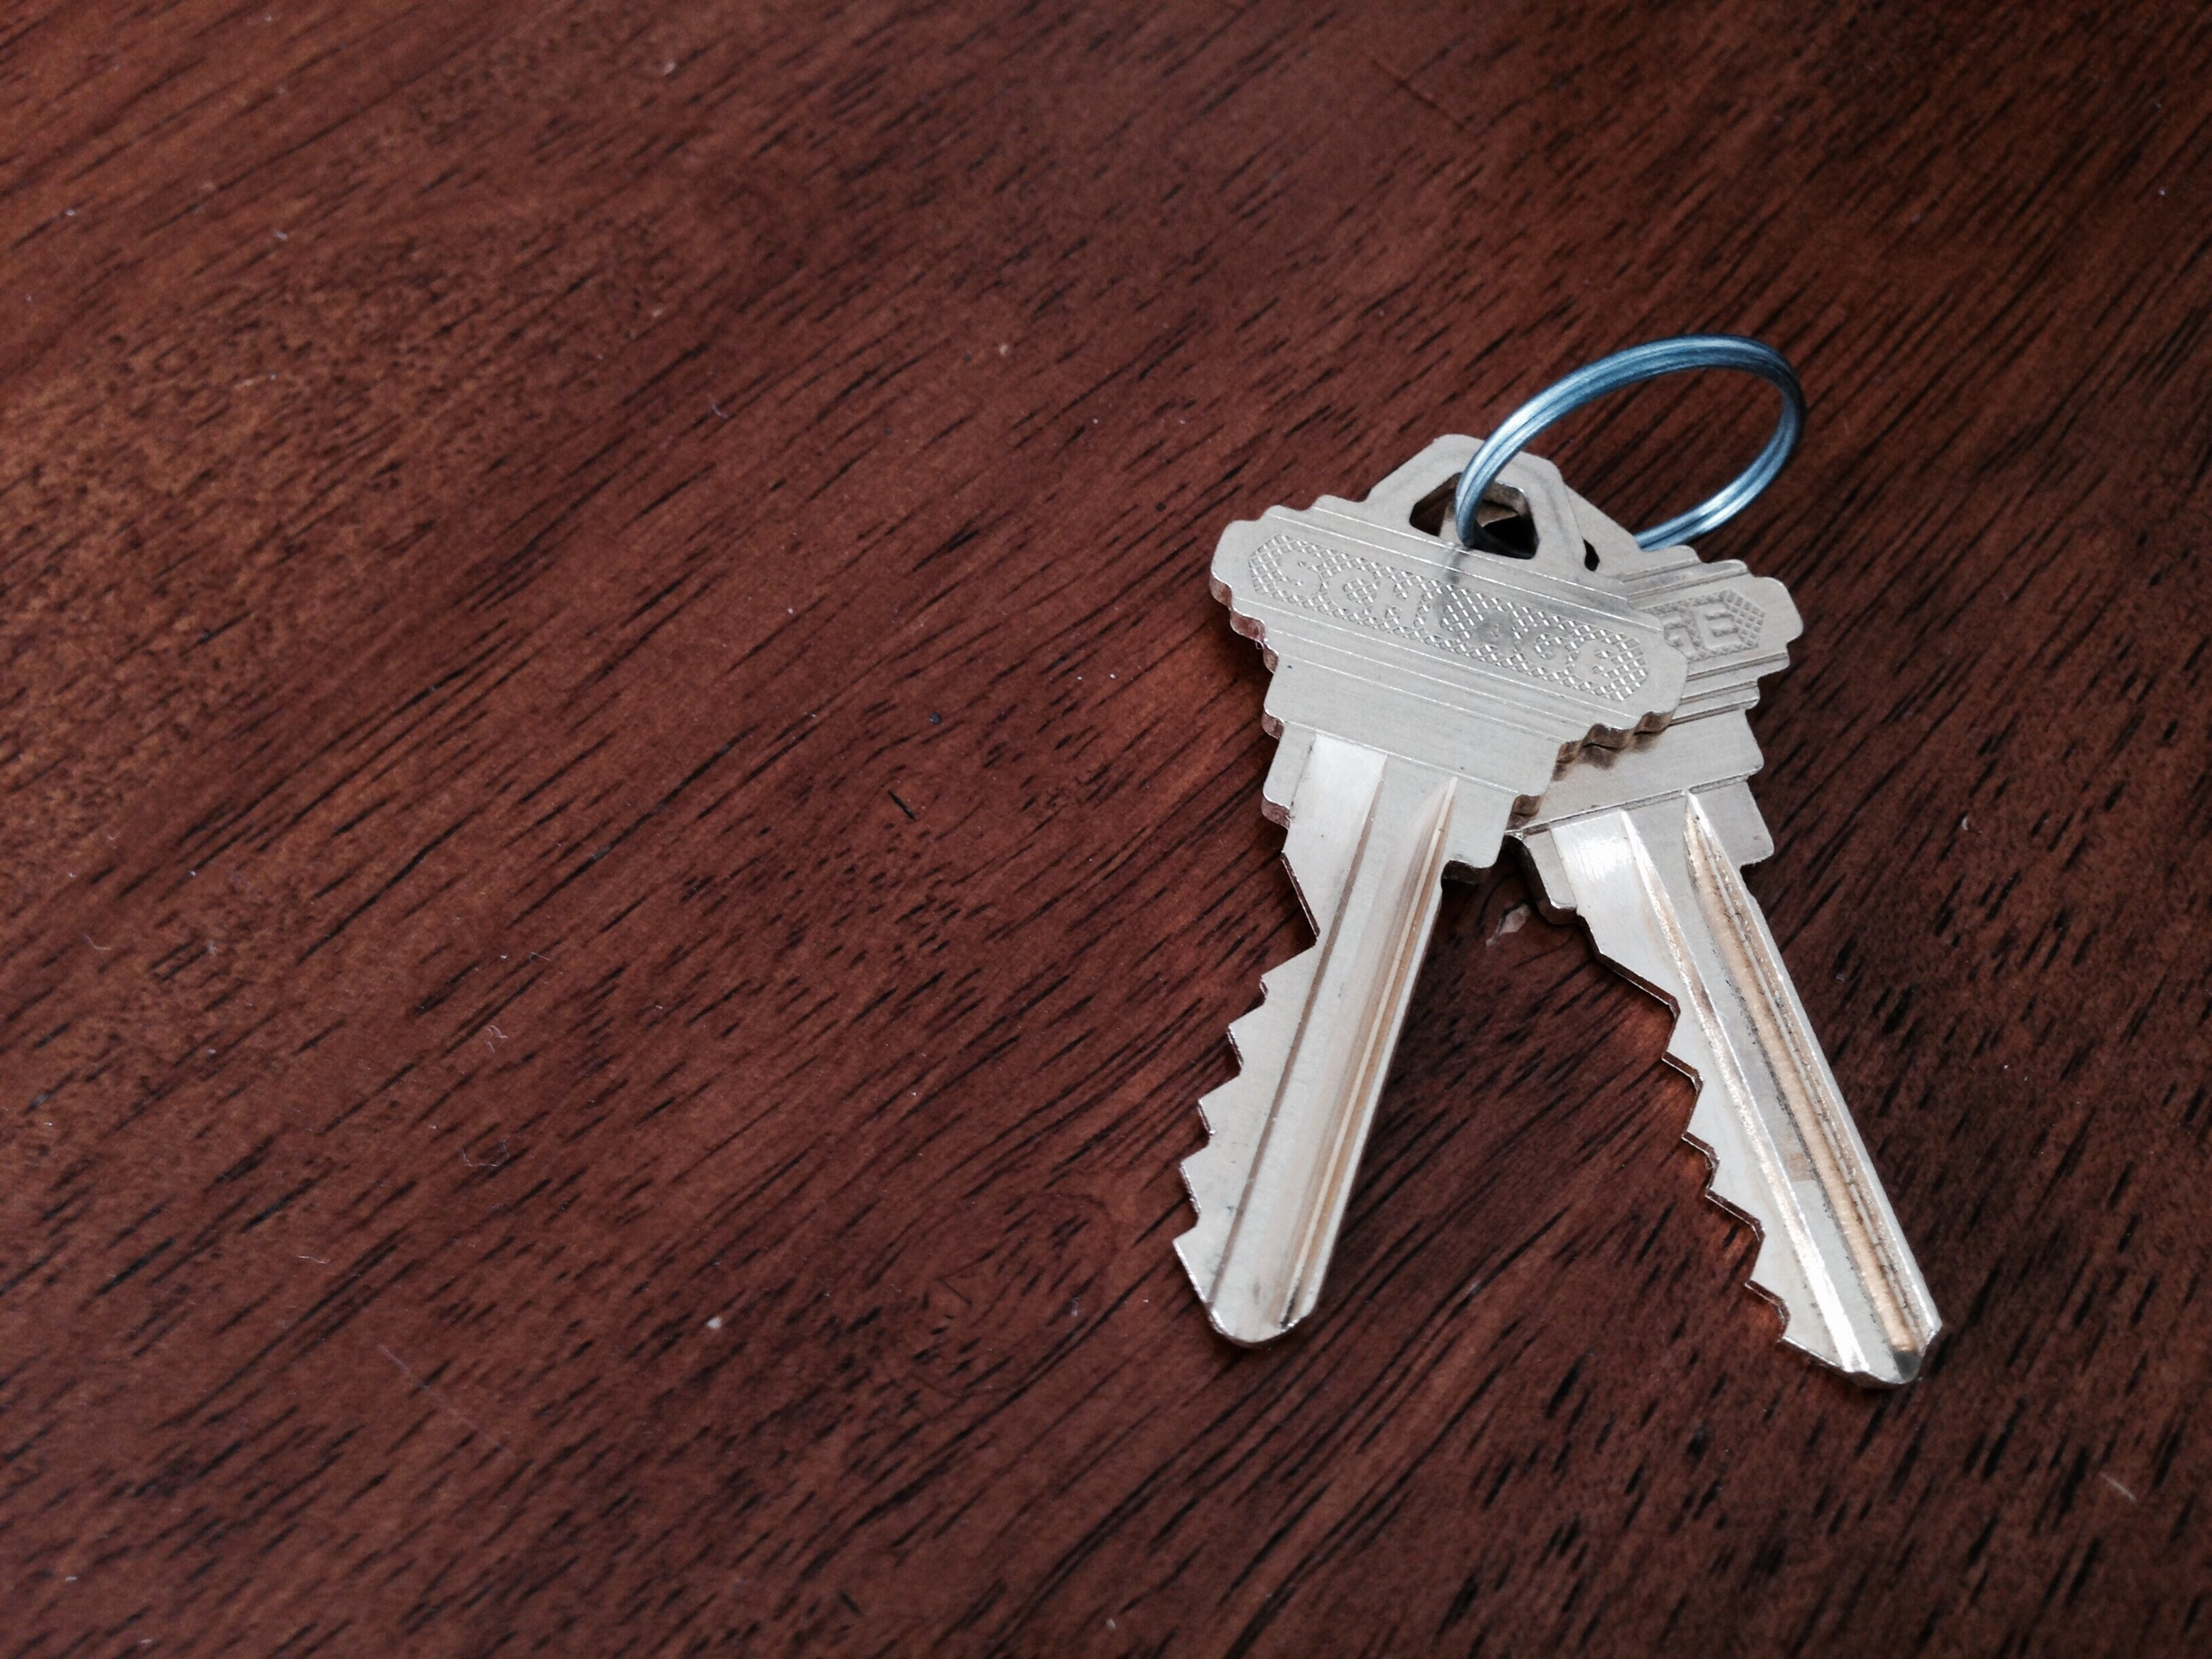 Keys to our new home! I installed the new locks a couple days before we closed.